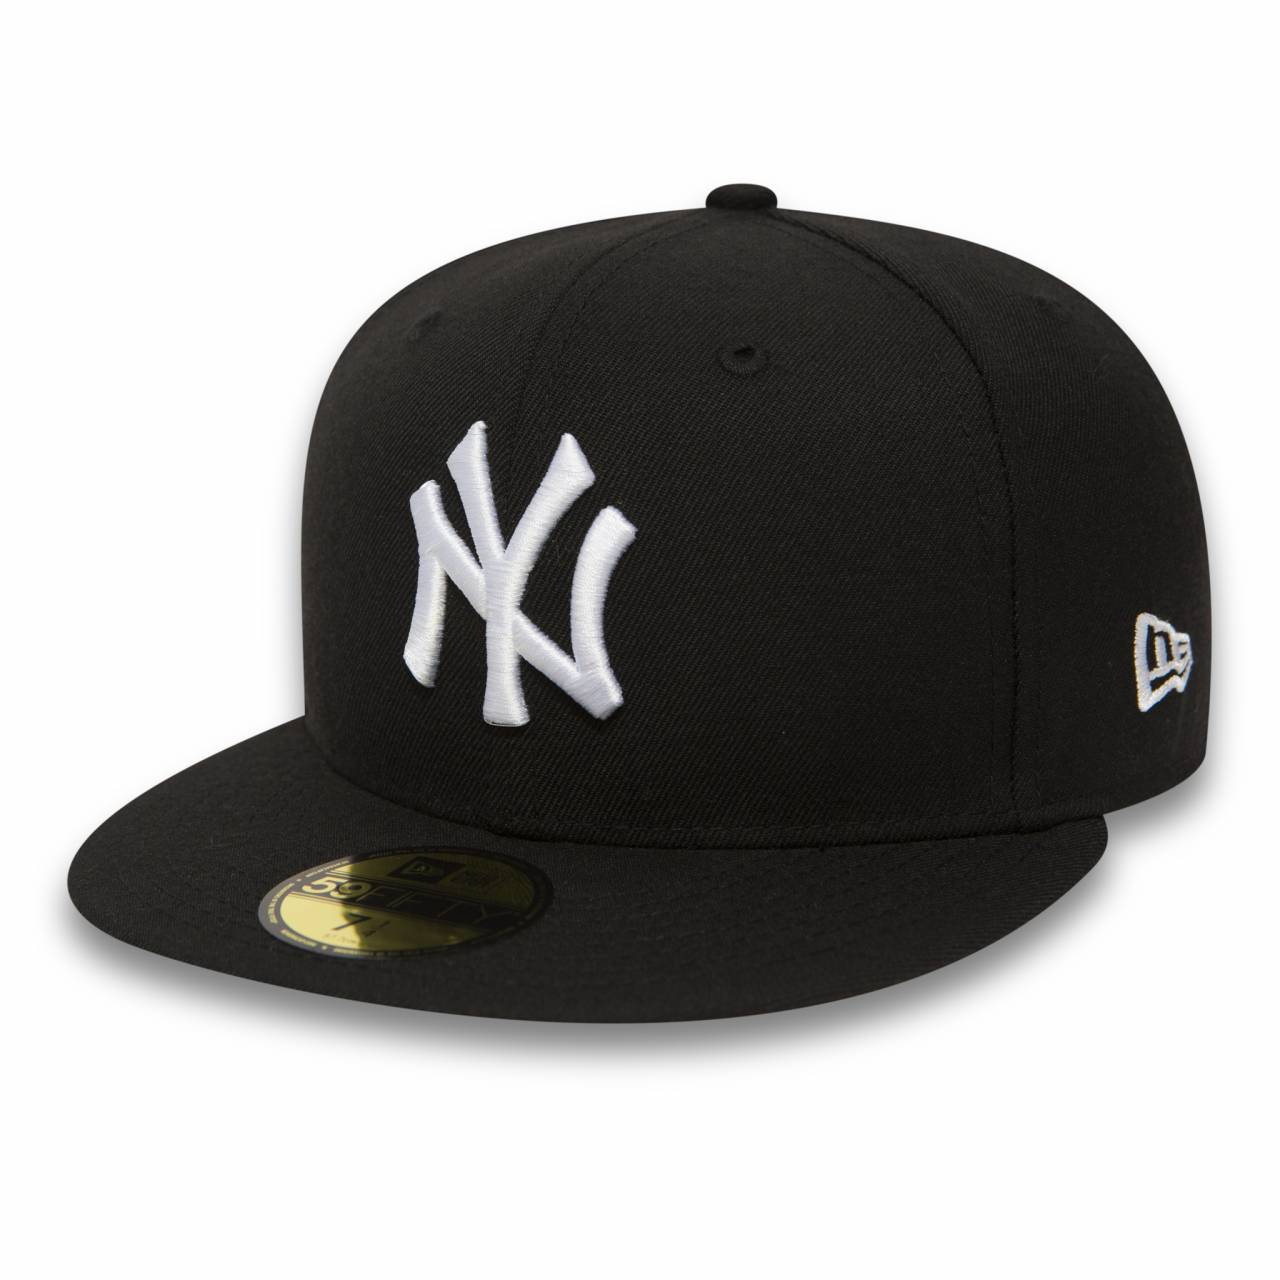 10003436 59FIFTY NEW YORK YANKEES BLACK/WHITE FITTED CAP